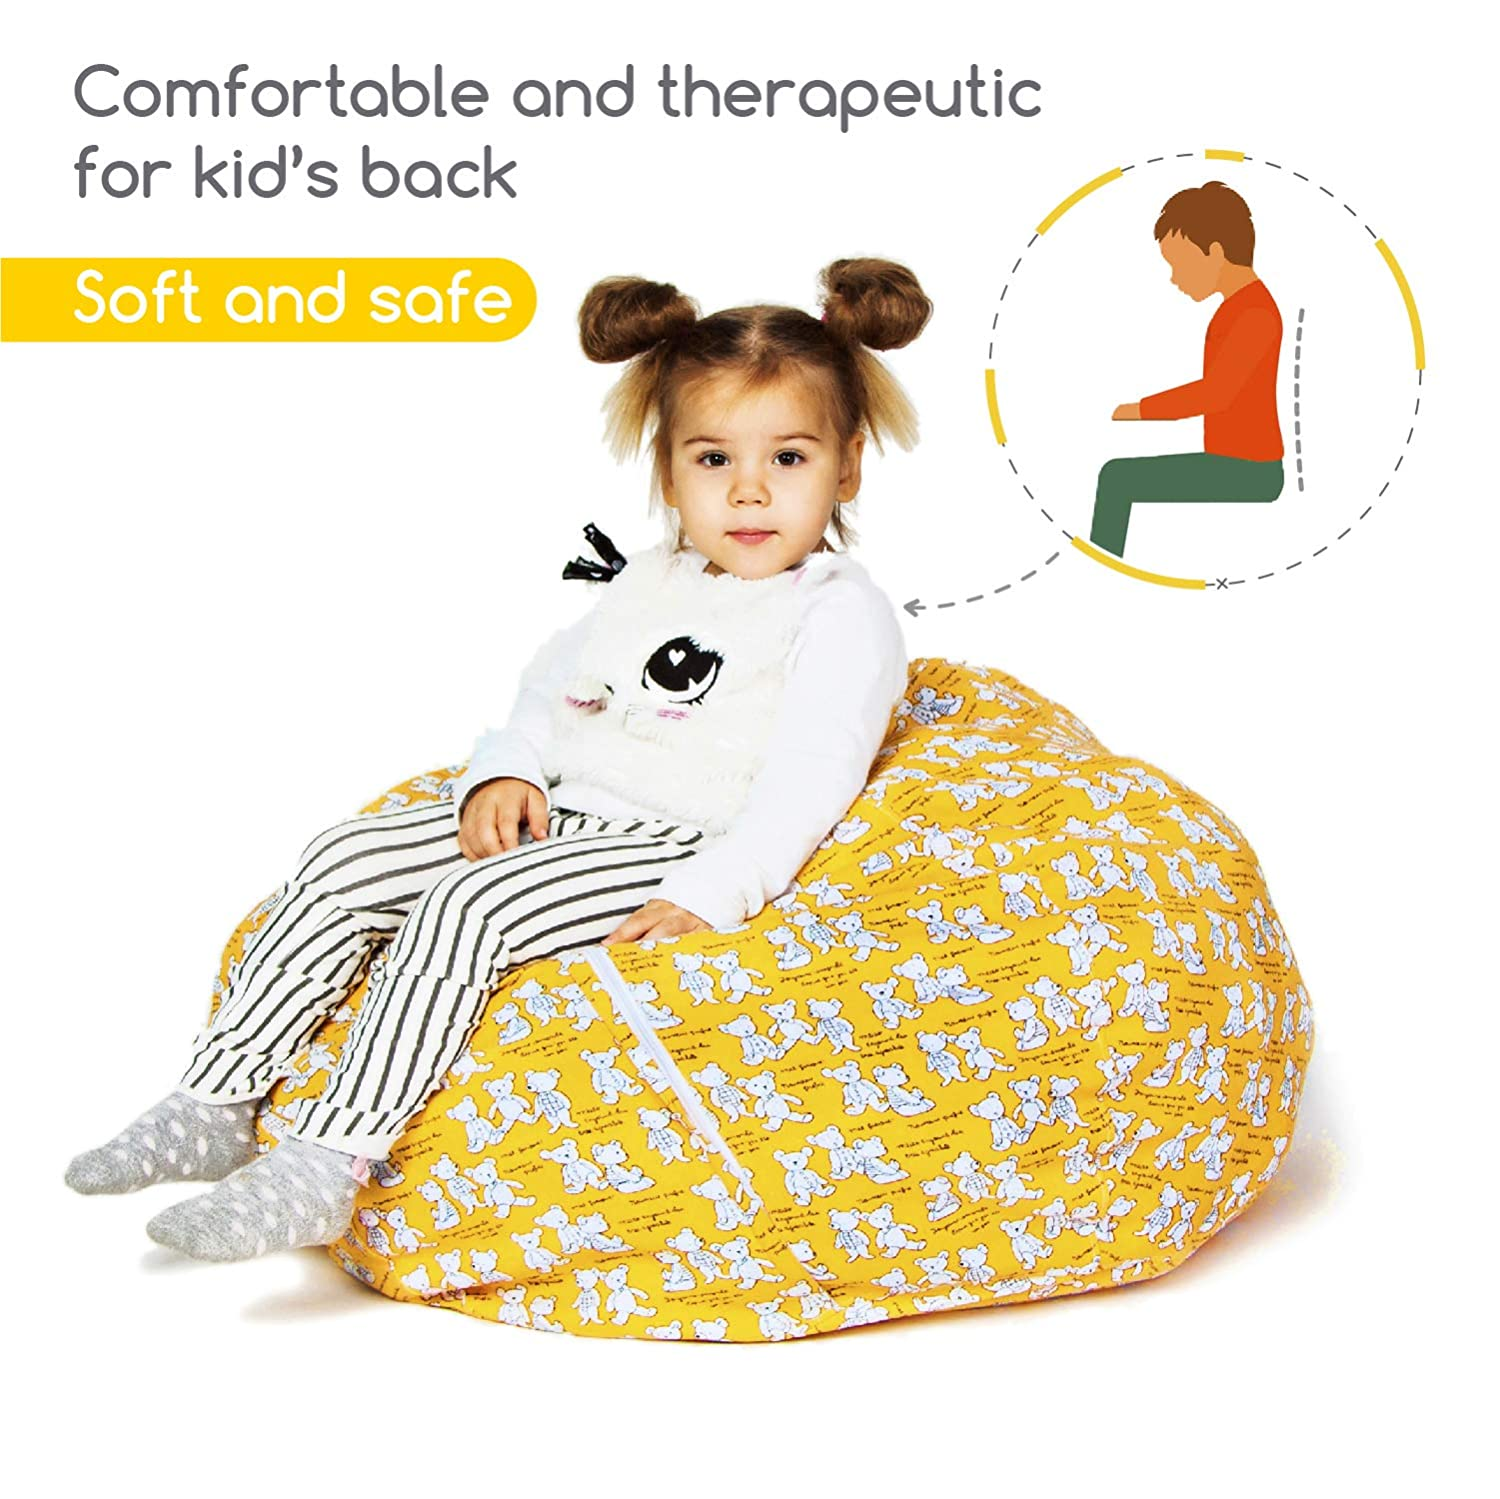 """Zupo Crafts Stuffed Animal Storage Bean Bag Great for Covers Plush Toys Towels Clothes BeanBag for Kids Toy Storage Bean Bag Cover Extra Large Size 38/"""" Soft Cotton Canvas Plush Toy Organizer"""